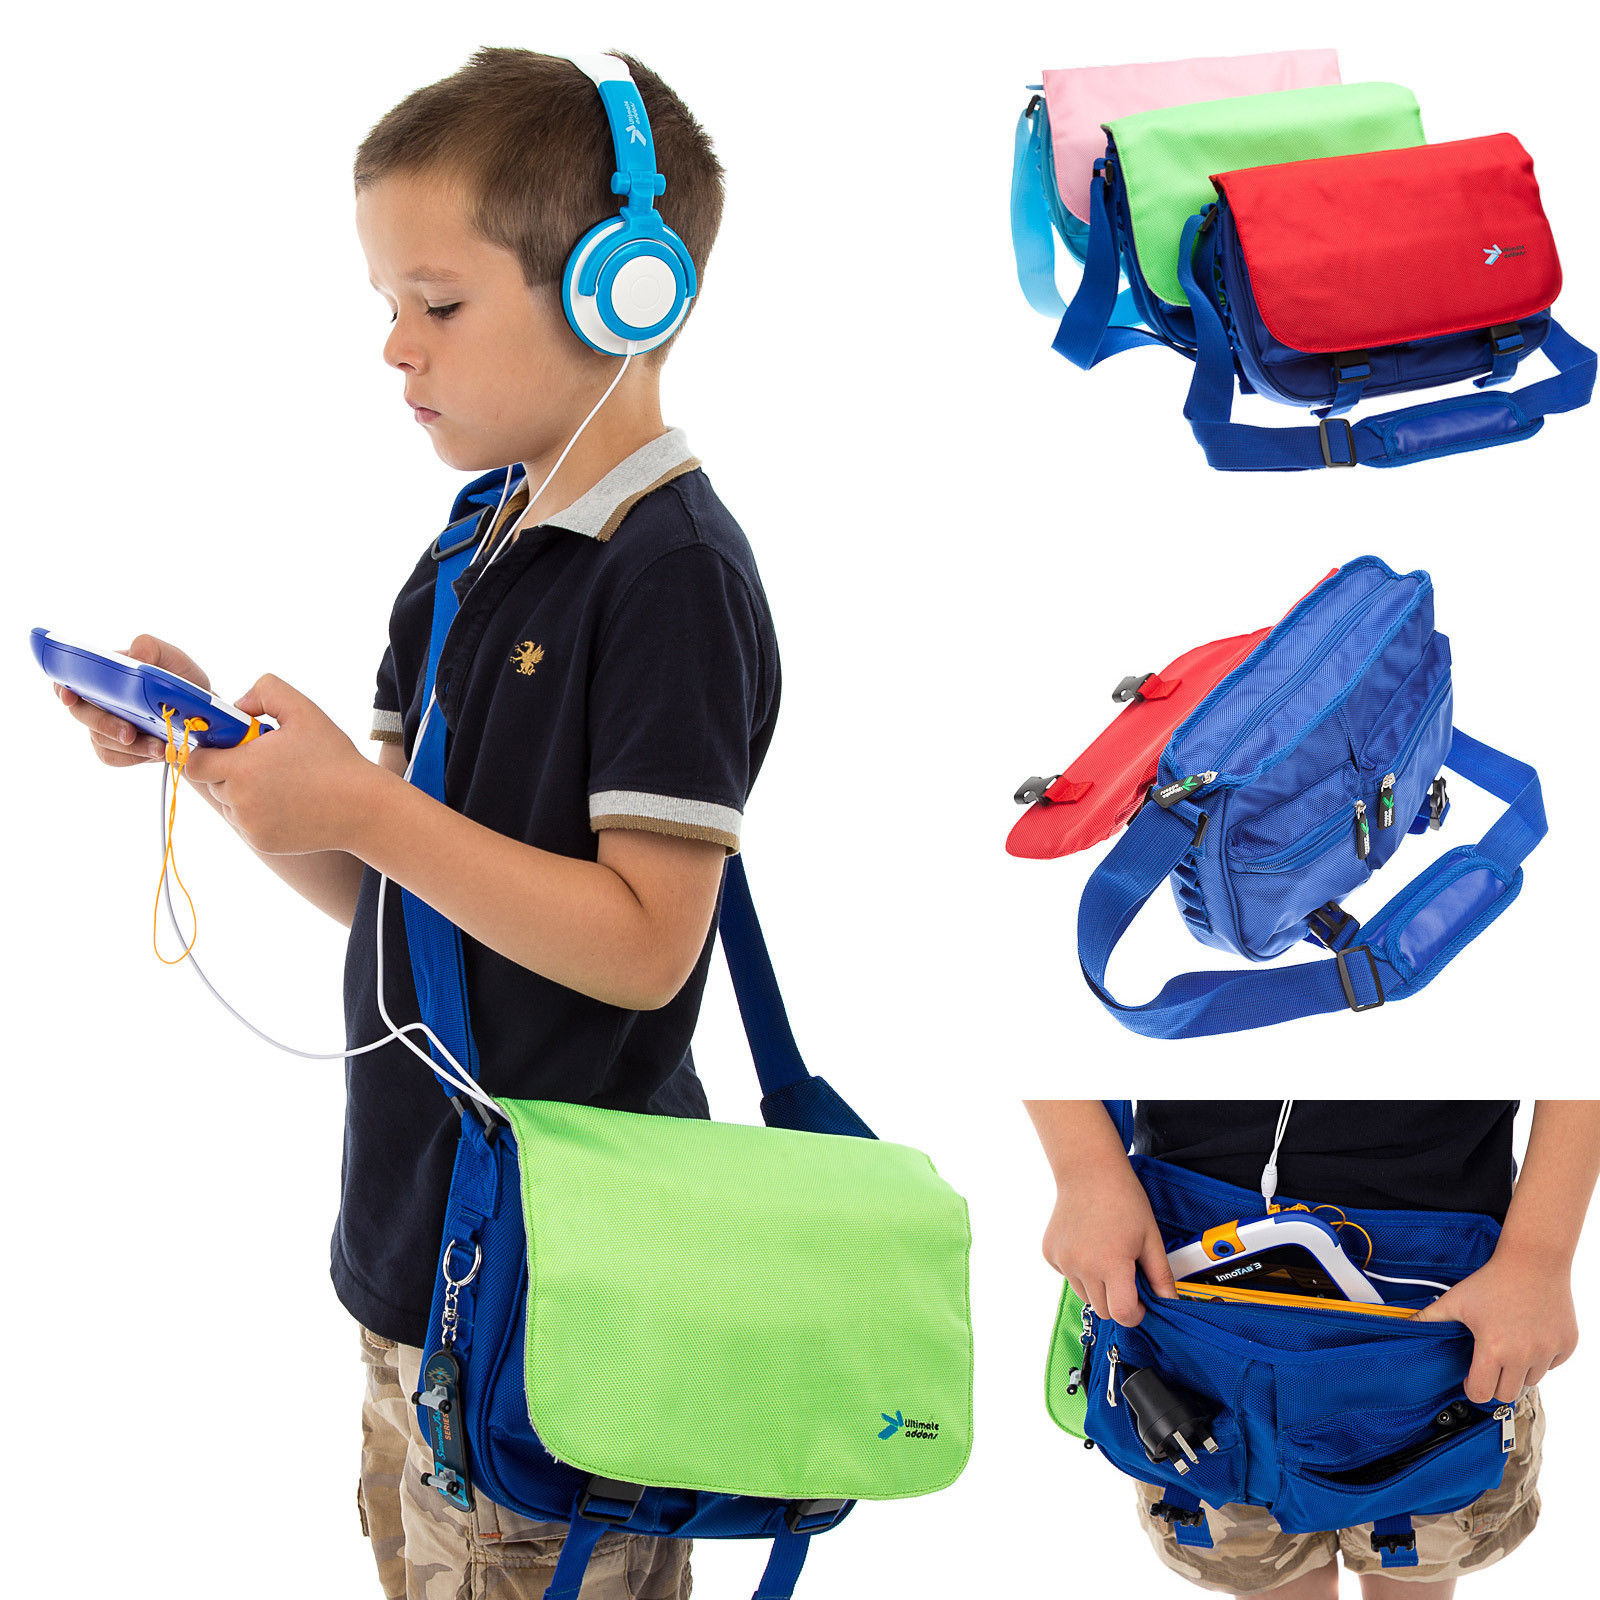 School bag for year 7 - Kids Messenger Satchel School Bag Dj Headphones For